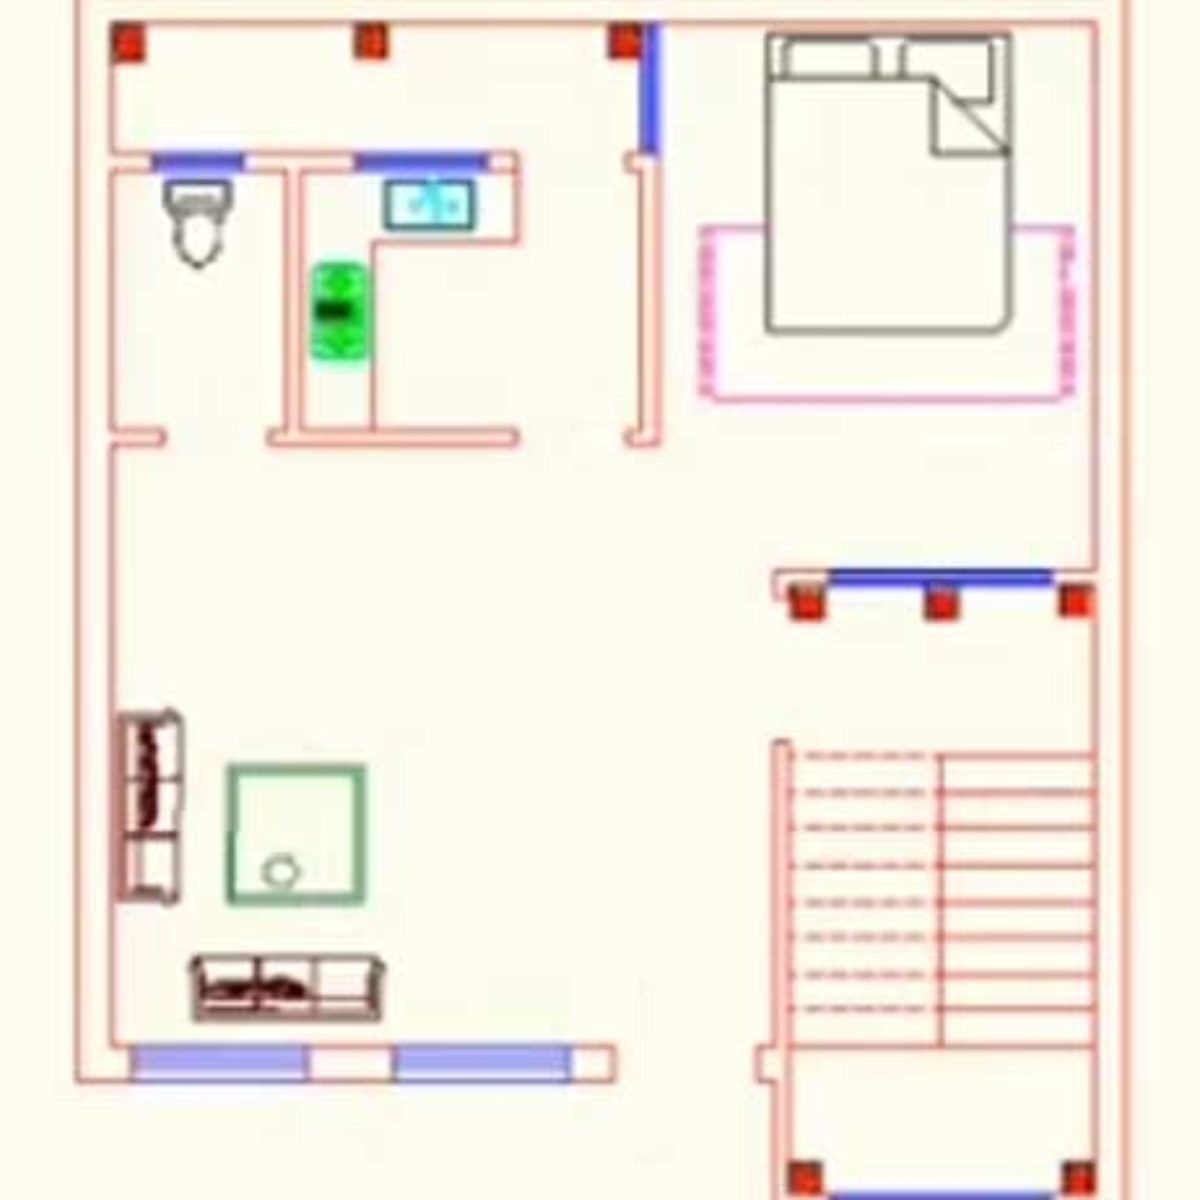 25 X 24 Feet Small House Plans Decorchamp